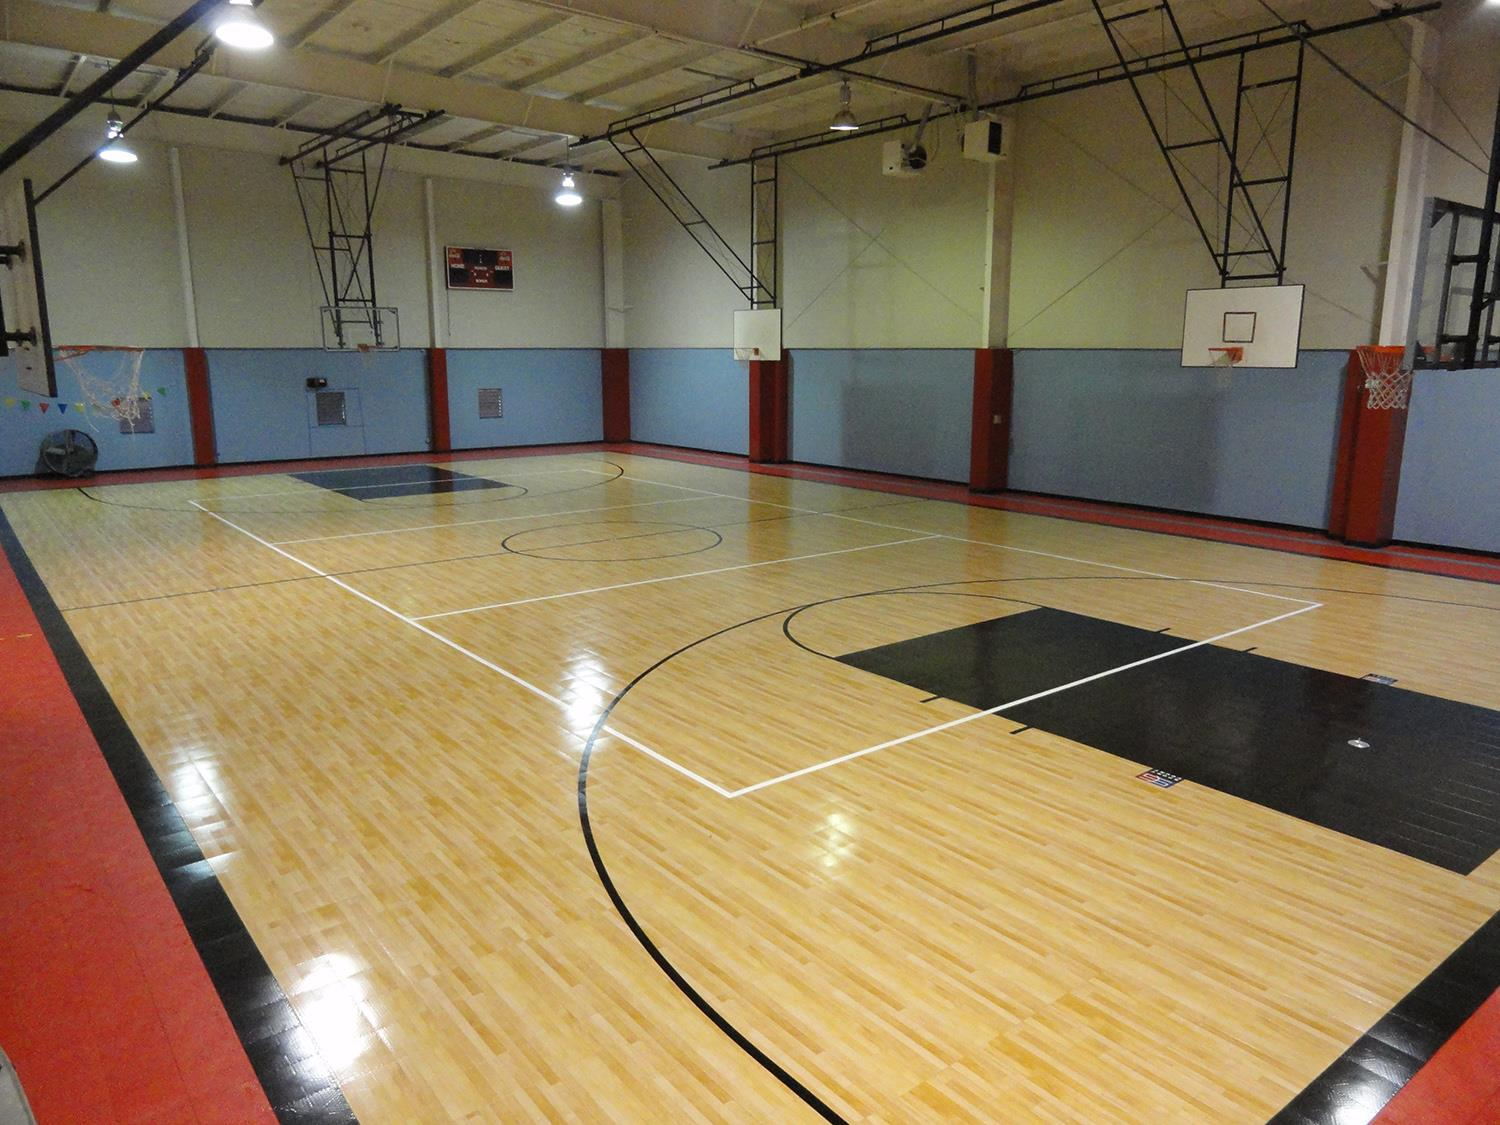 Texas Highschool Upgrades Sport Court Gym Flooring to MapleSelect™